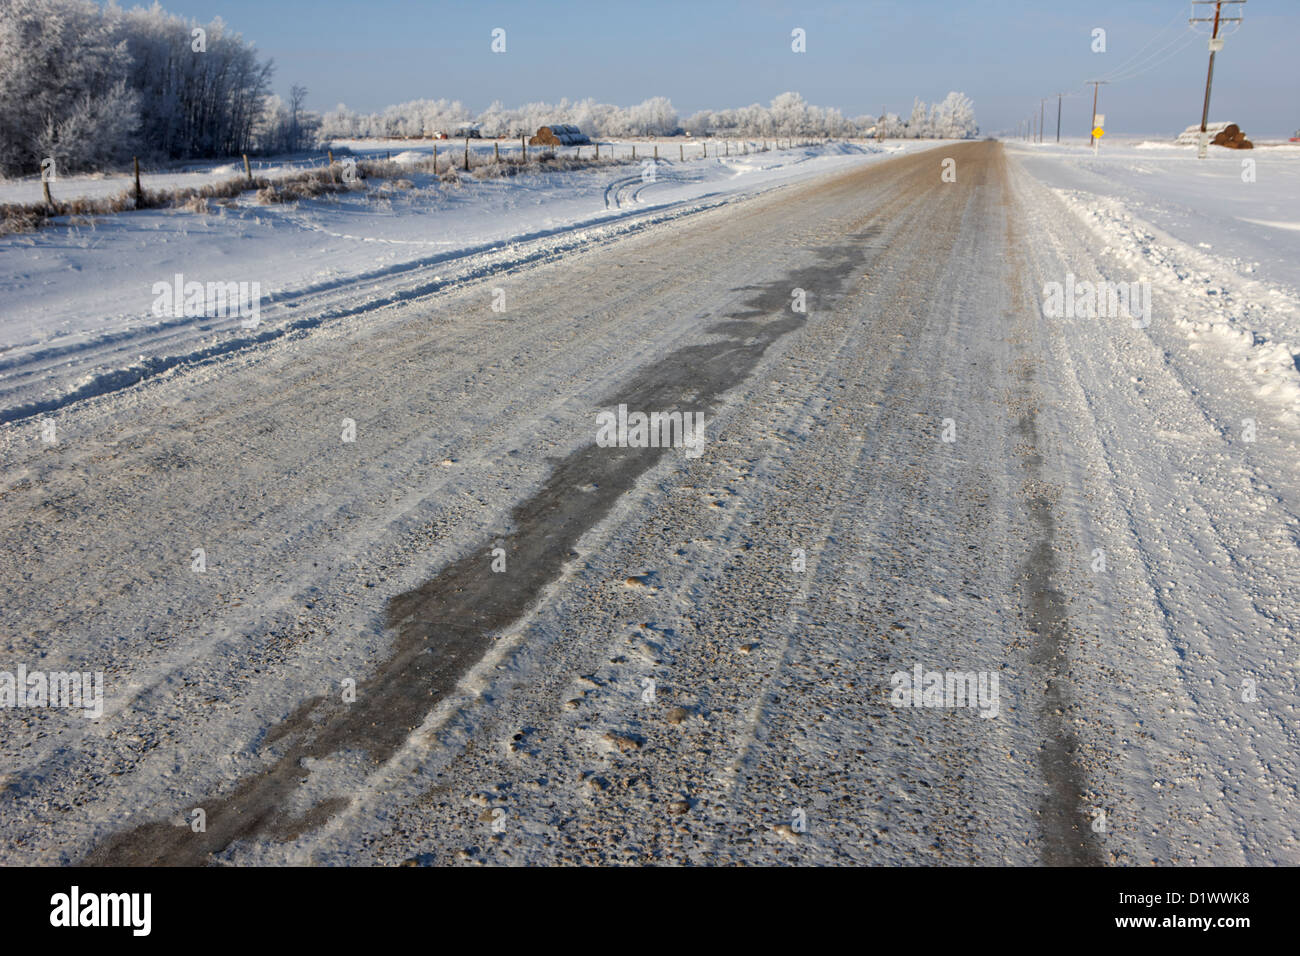 frozen salt and grit covered rural small road in Forget Saskatchewan Canada - Stock Image